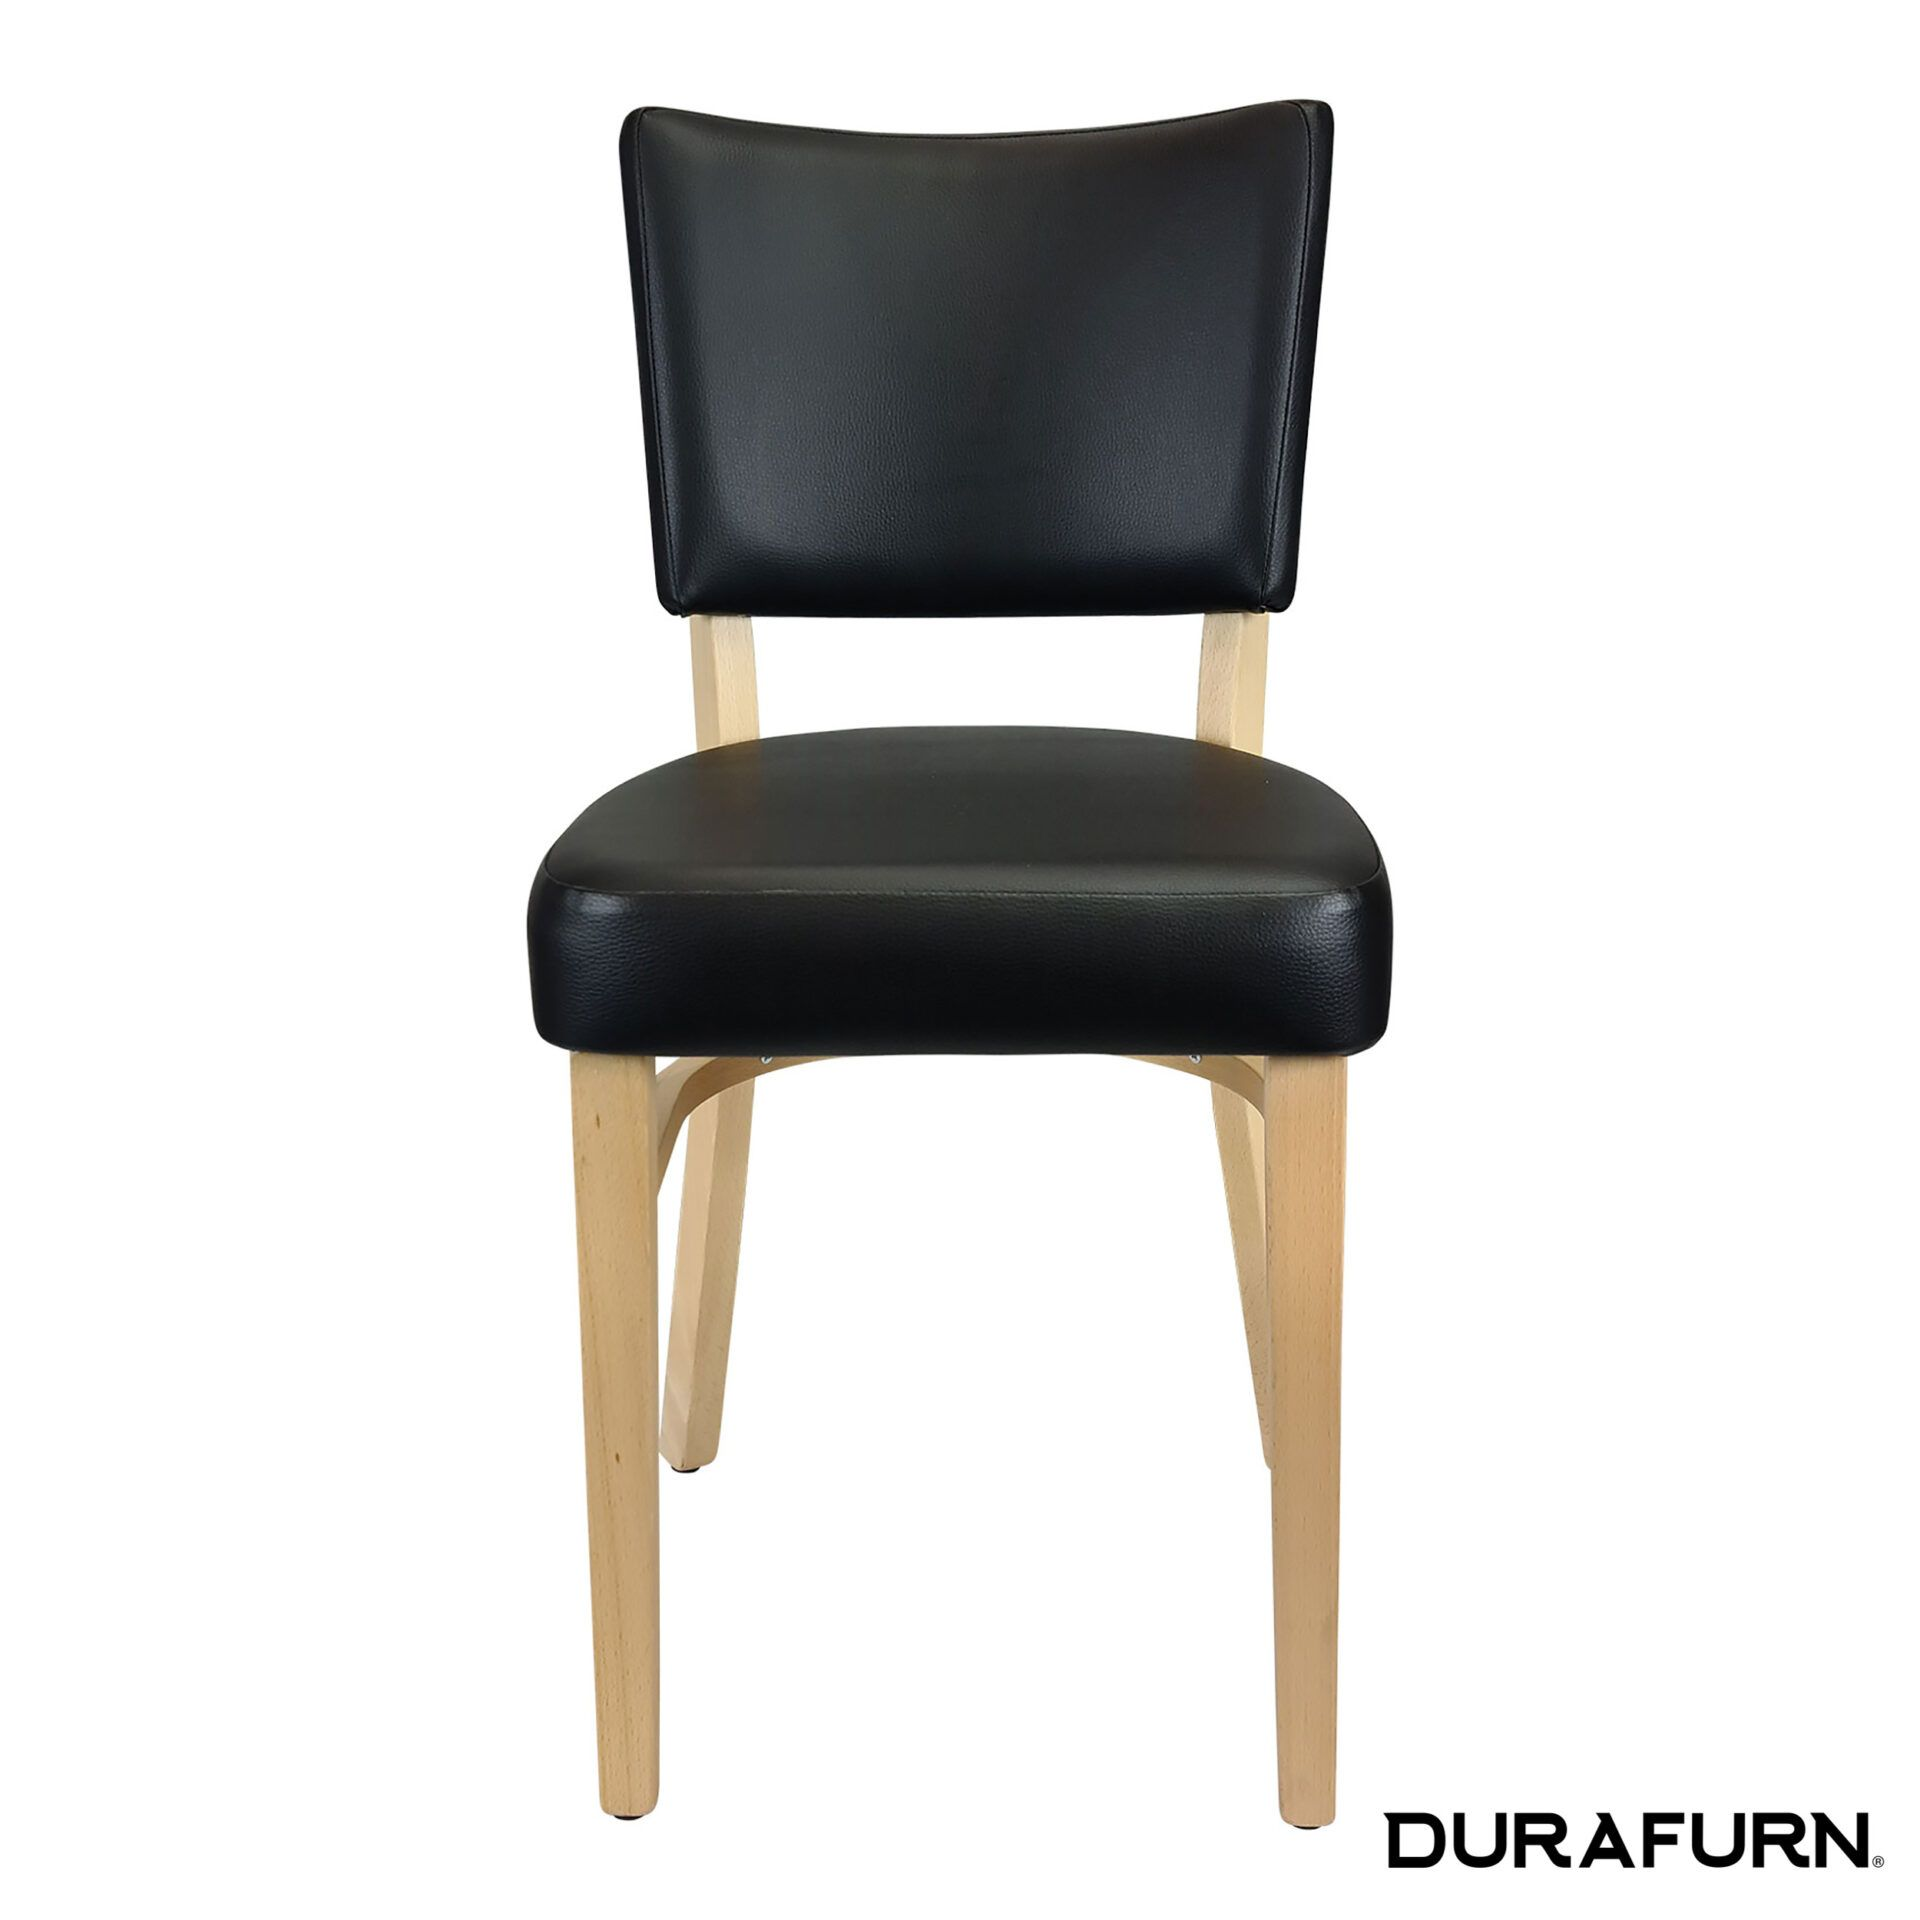 memphis chair natural.front